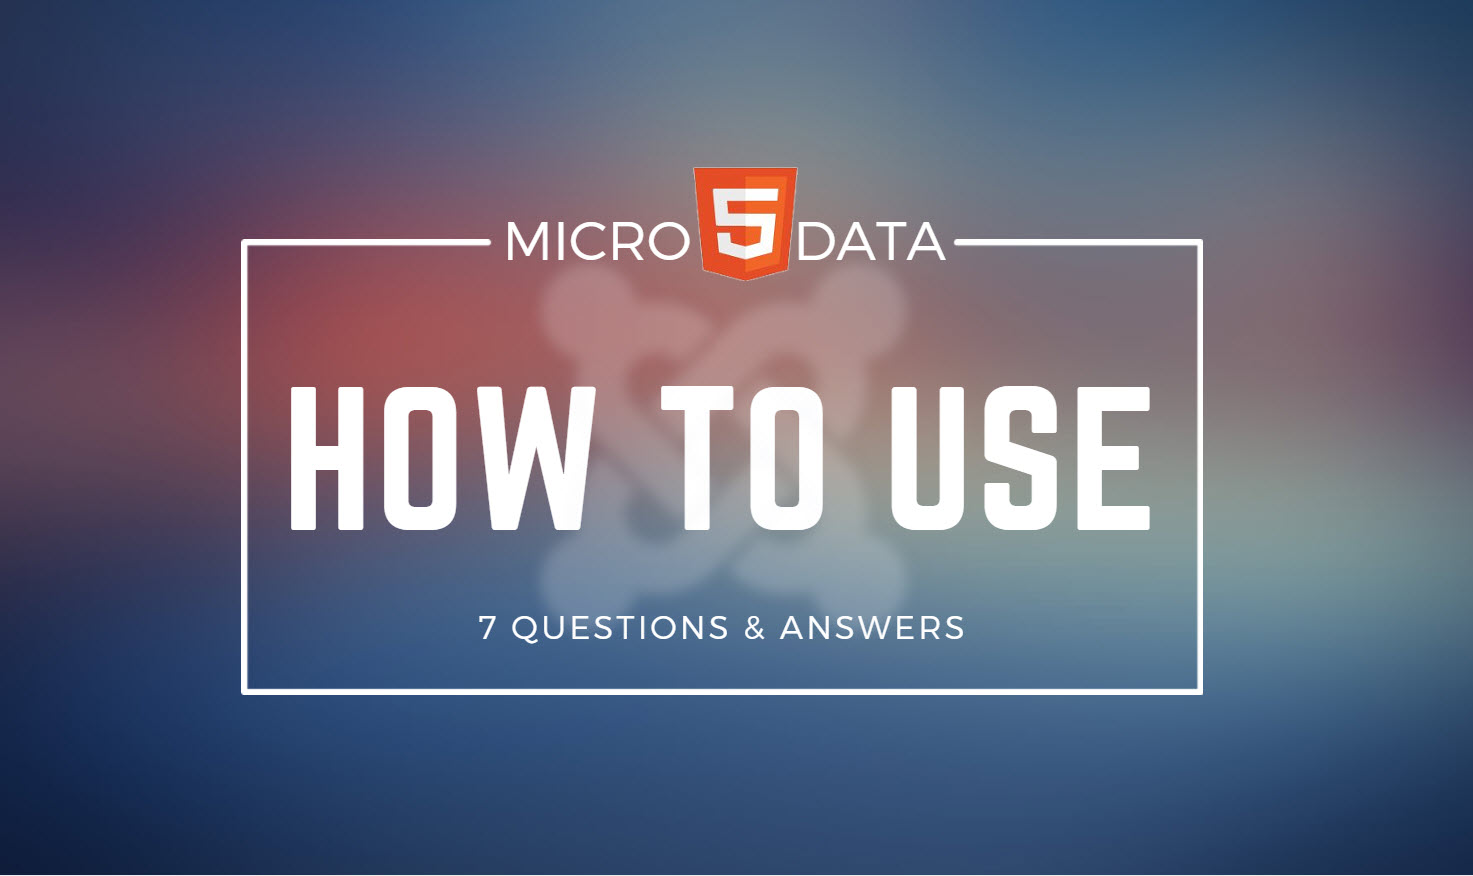 7 questions and answers about how to use Microdata in Joomla